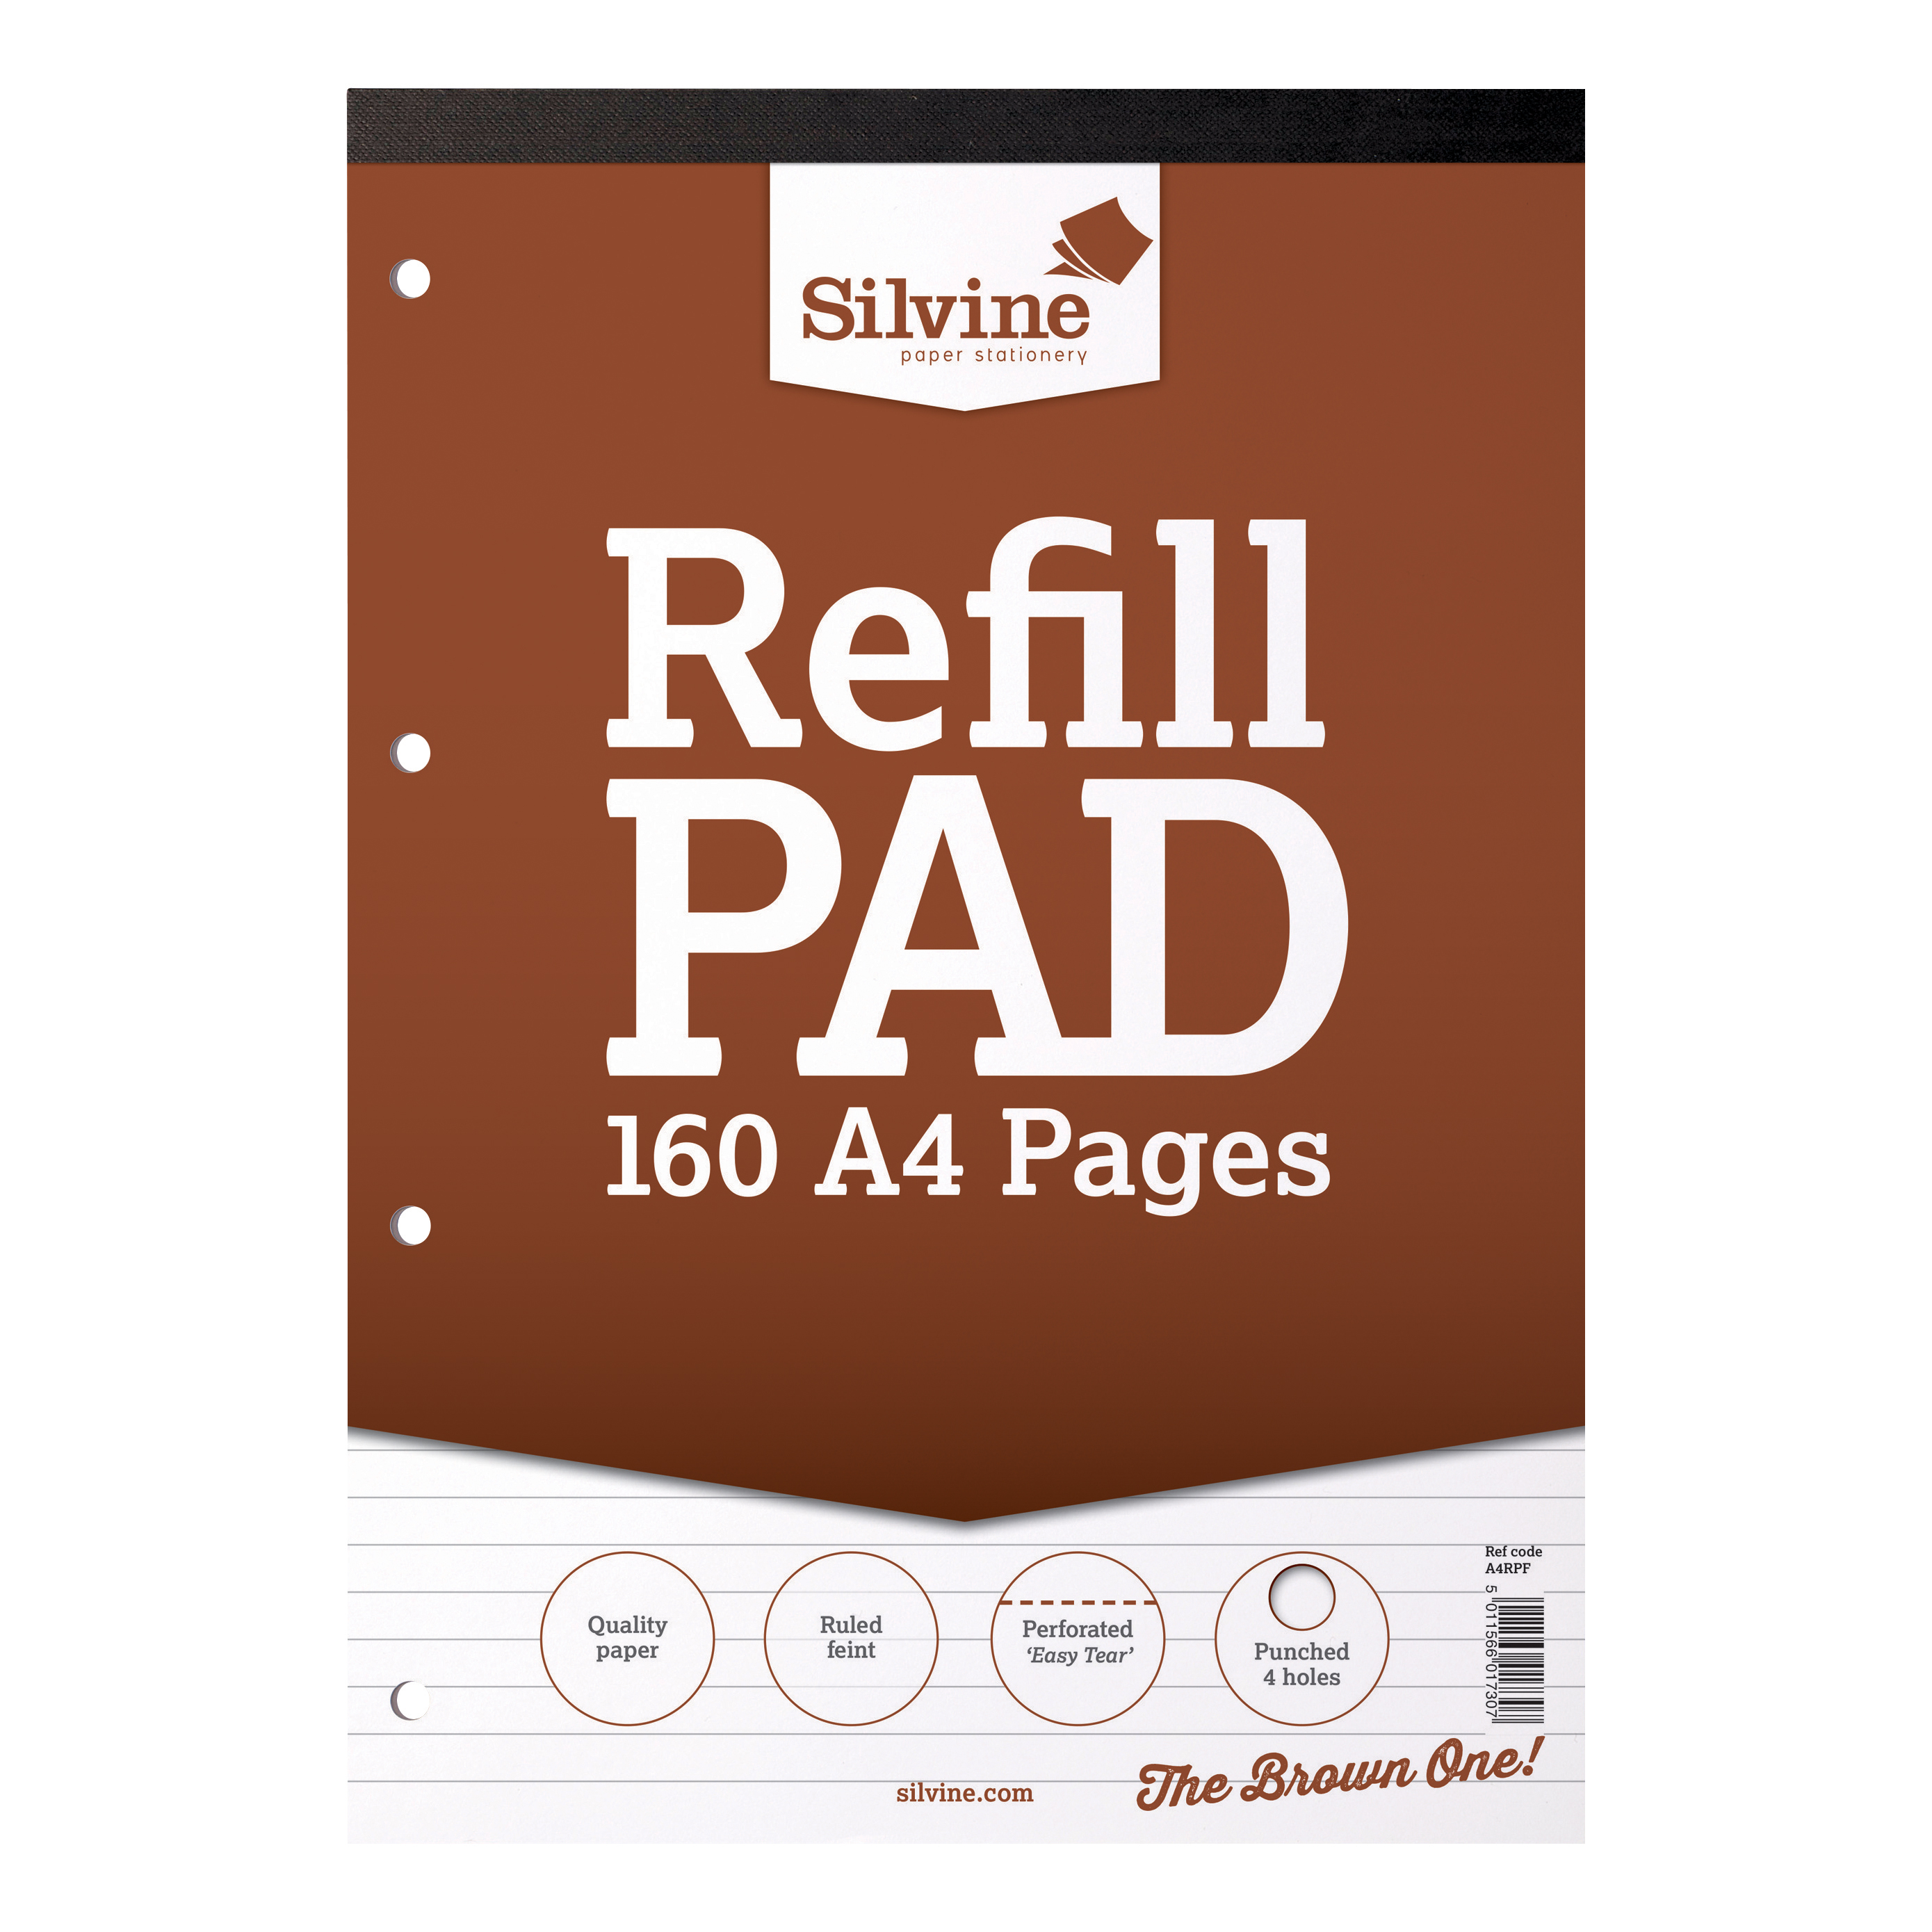 Silvine Refill Pad Headbound 75gsm Ruled Perforated Punched 4 Holes 160pp A4 Brown Ref A4RPF Pack 6